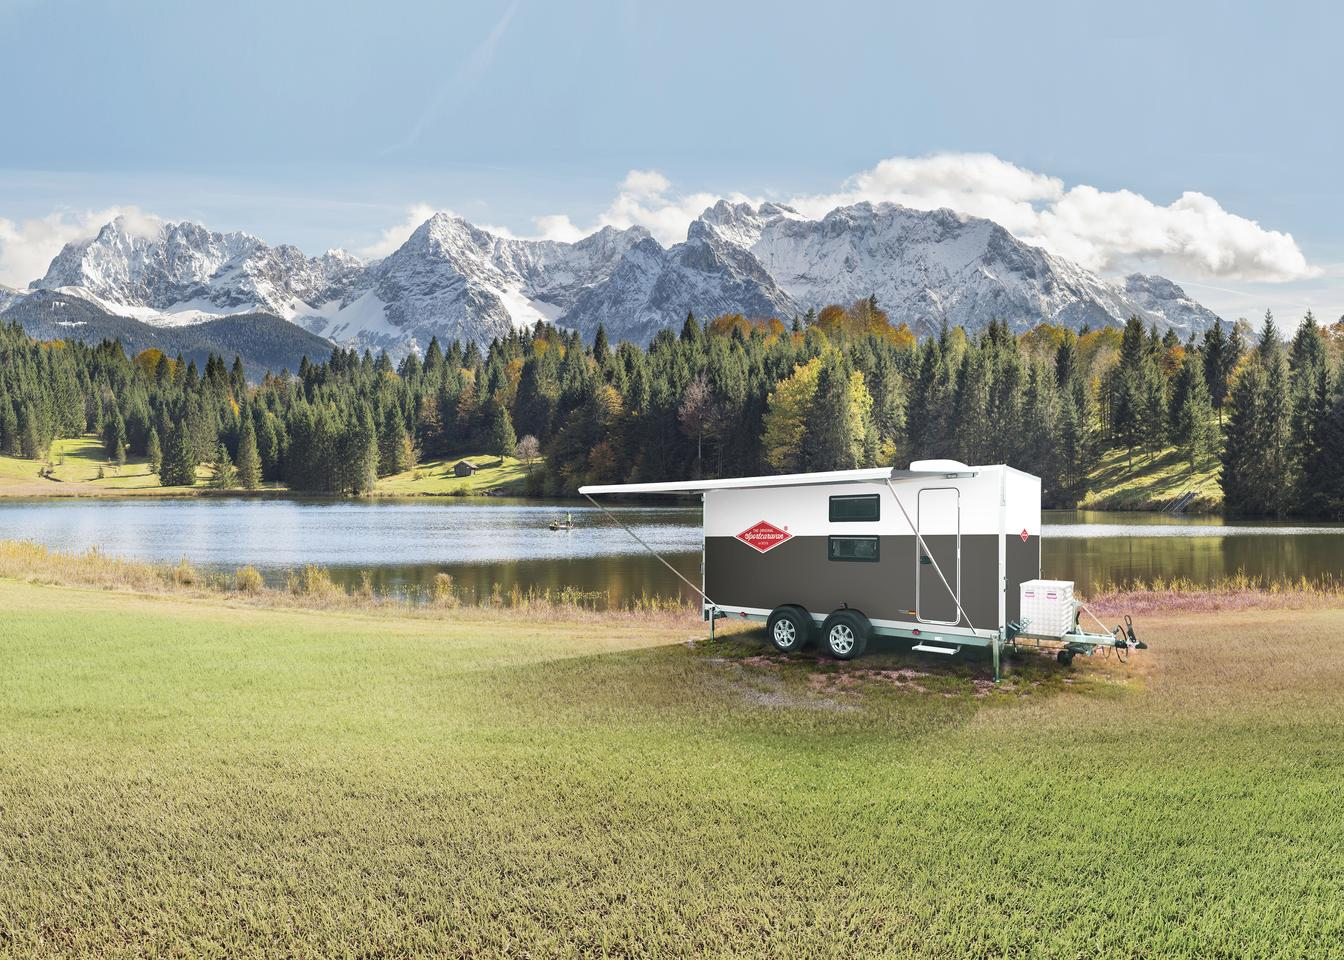 Sportcaravan attempts to create the ultimate combo of comfy camper and capable toy hauler